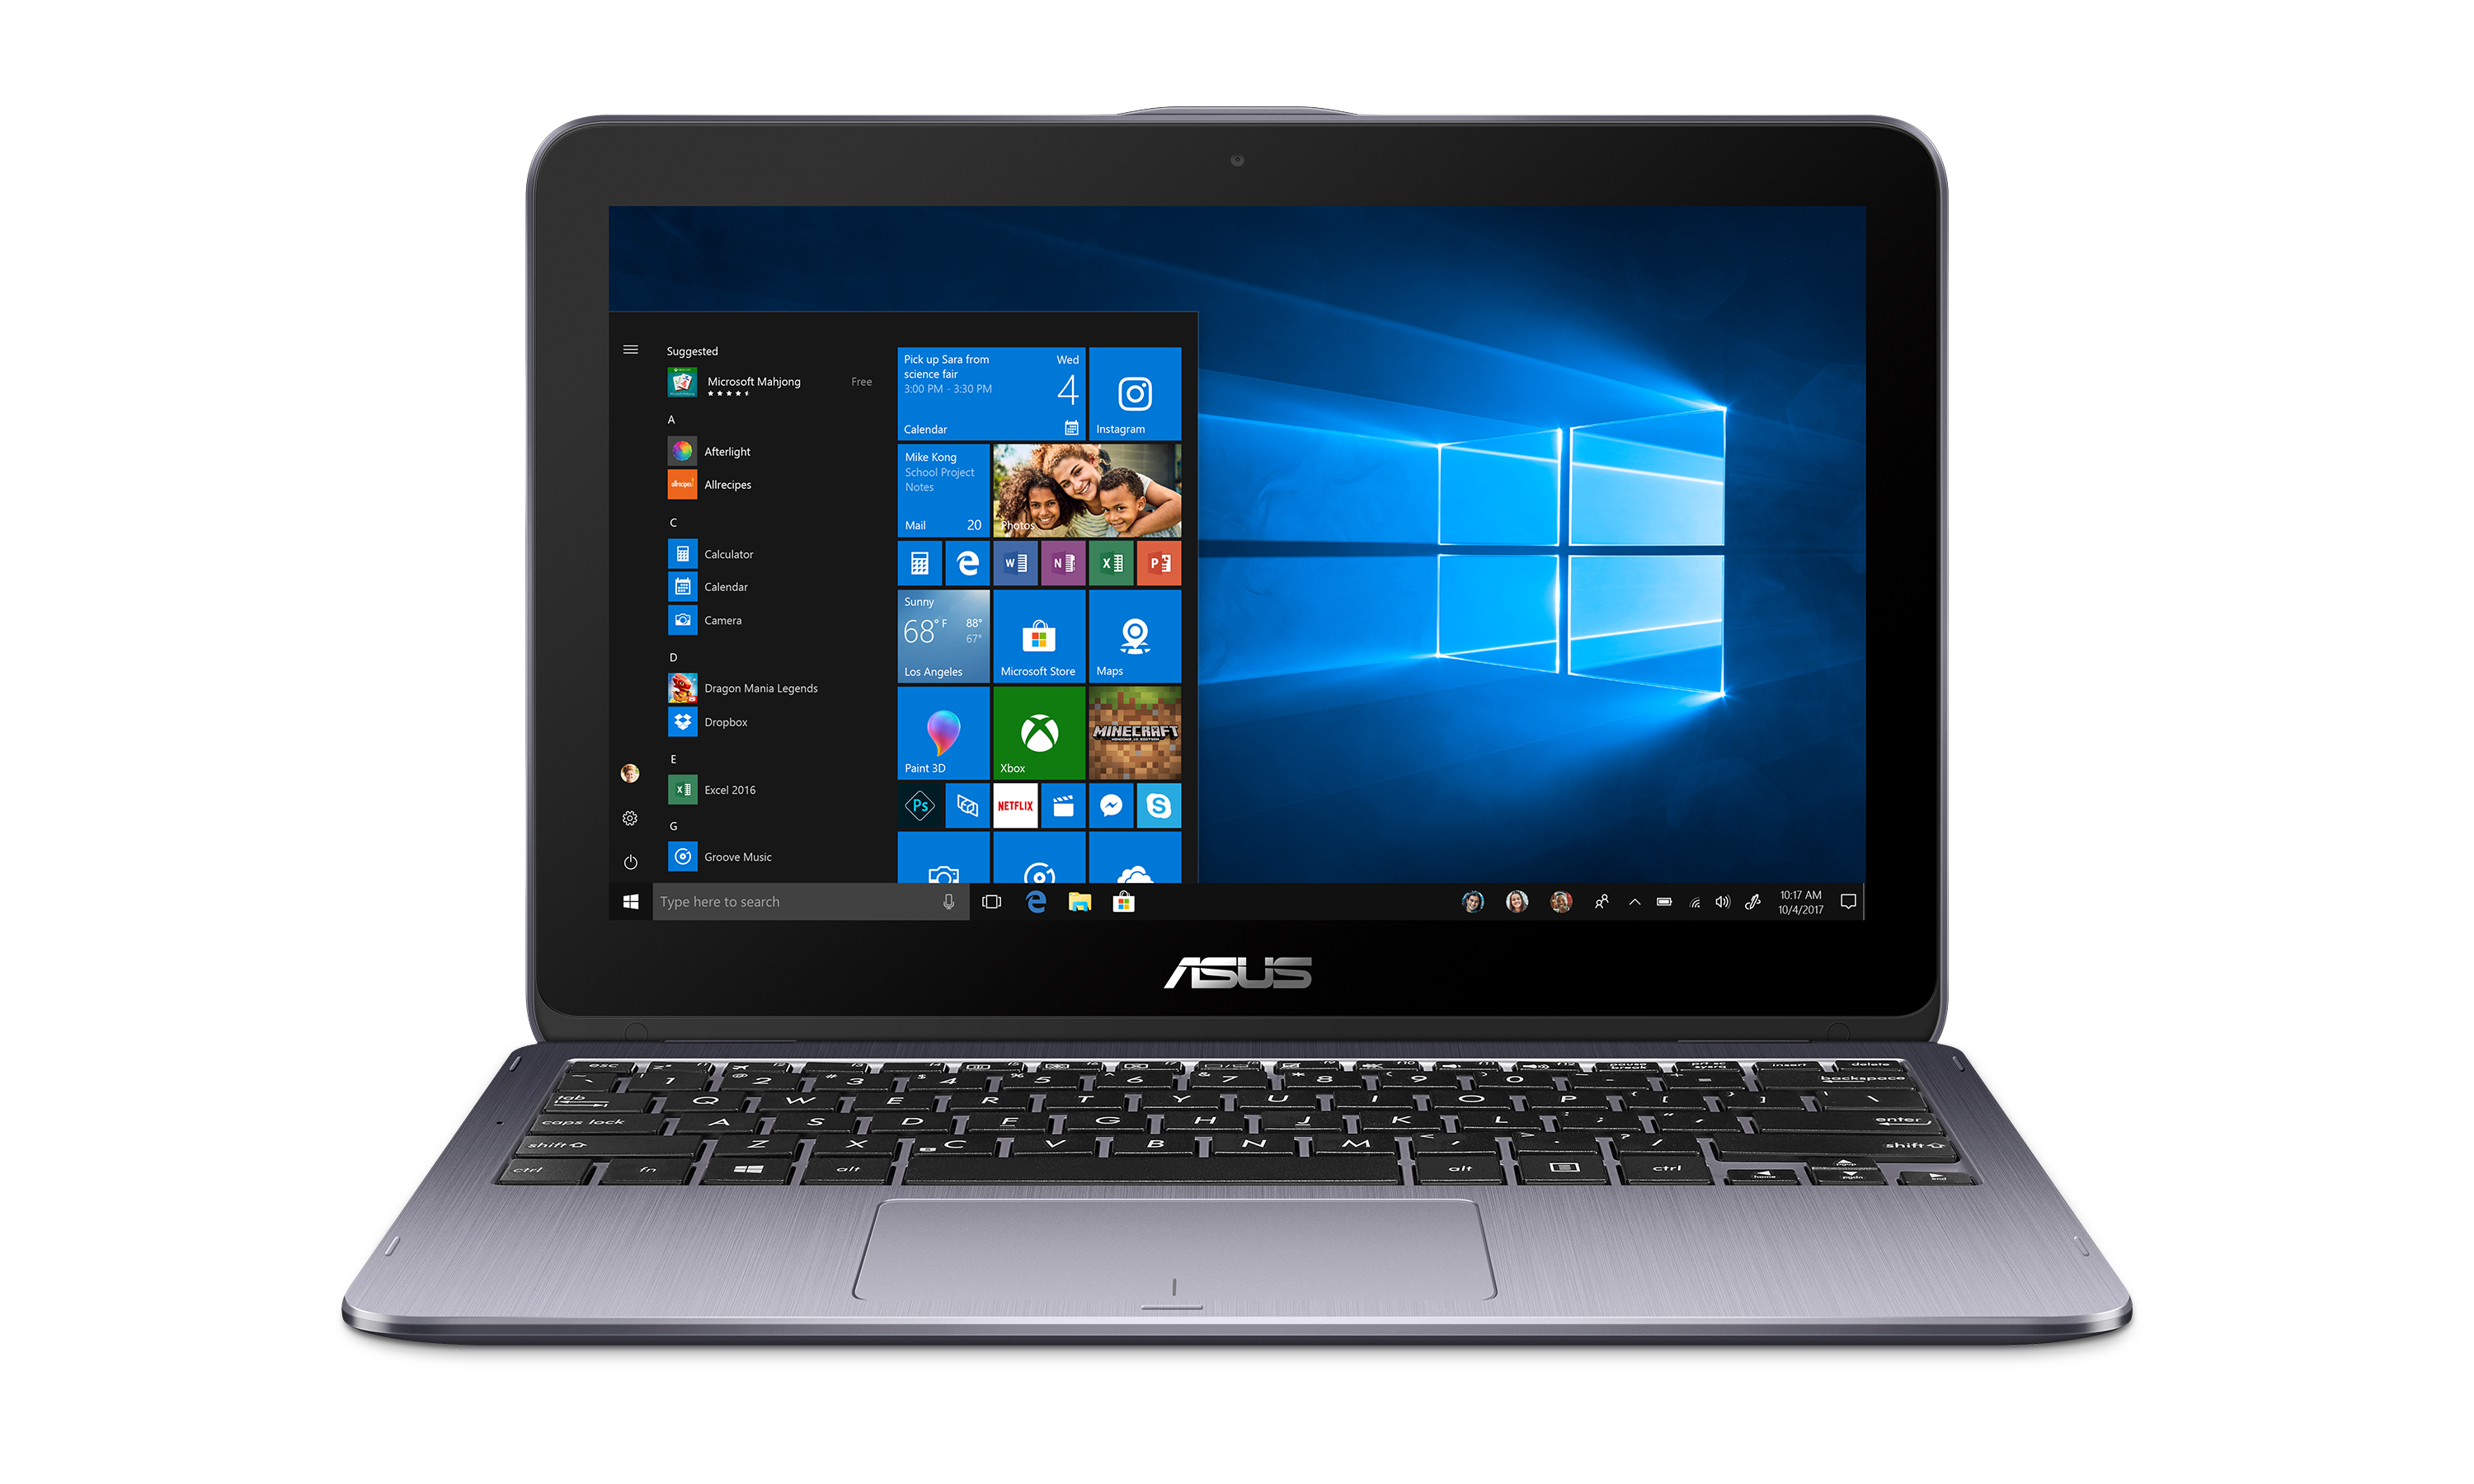 ASUS VivoBook Flip 12 TP203NA-UH01T 2 in 1 PC